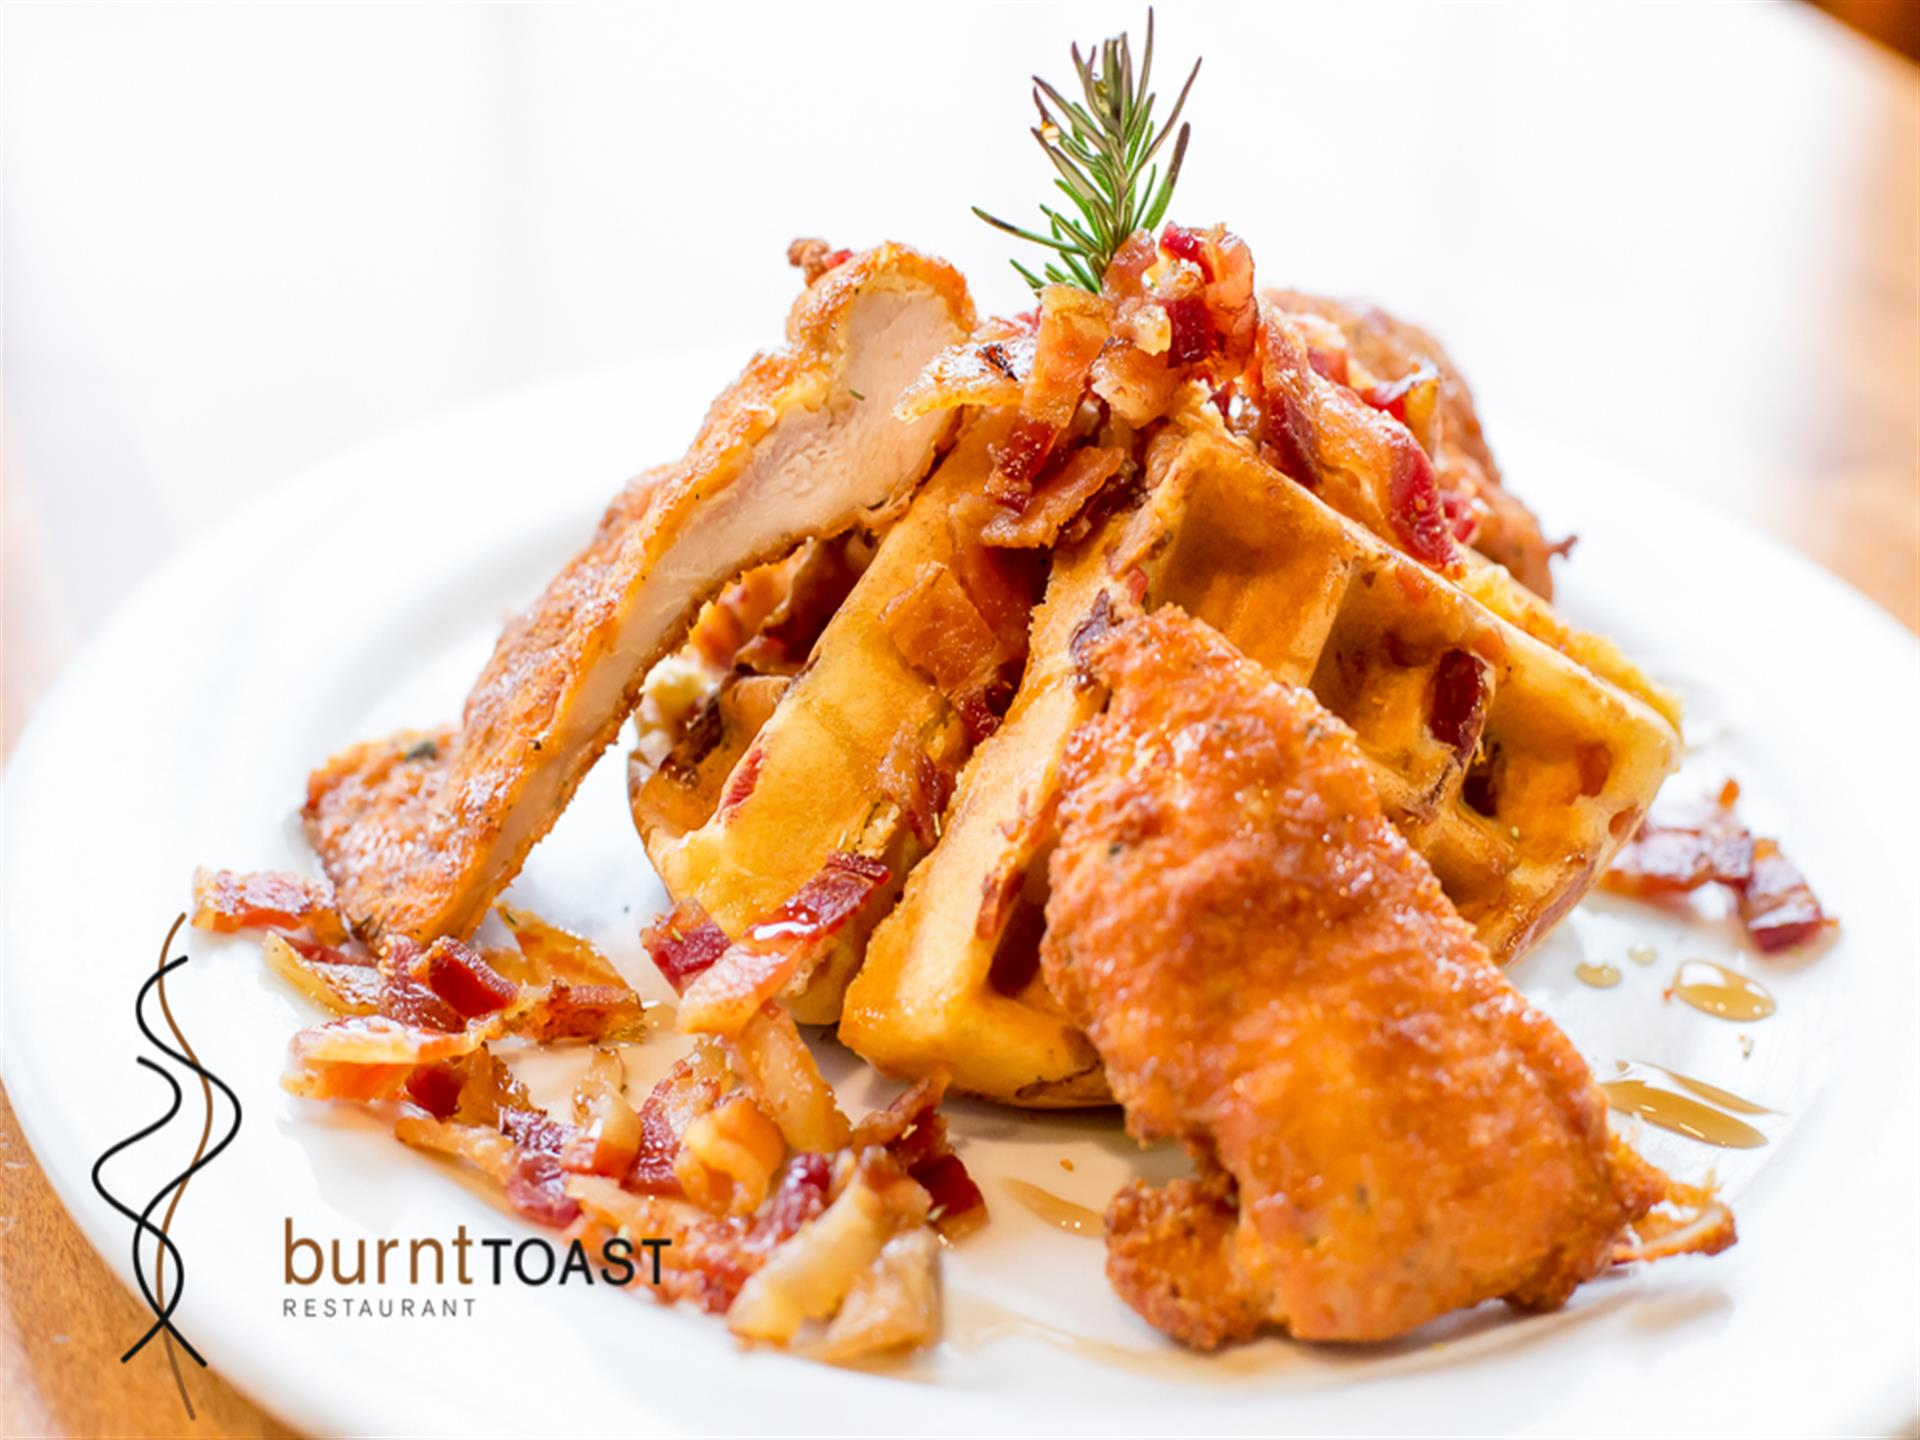 Chicken & Bacon & Waffles. Enjoy succulent layers of flavor starting from the bottom with our homemade bacon stuffed waffles & special rosemary fried chicken breast, then topped with our thick & juicy bacon.